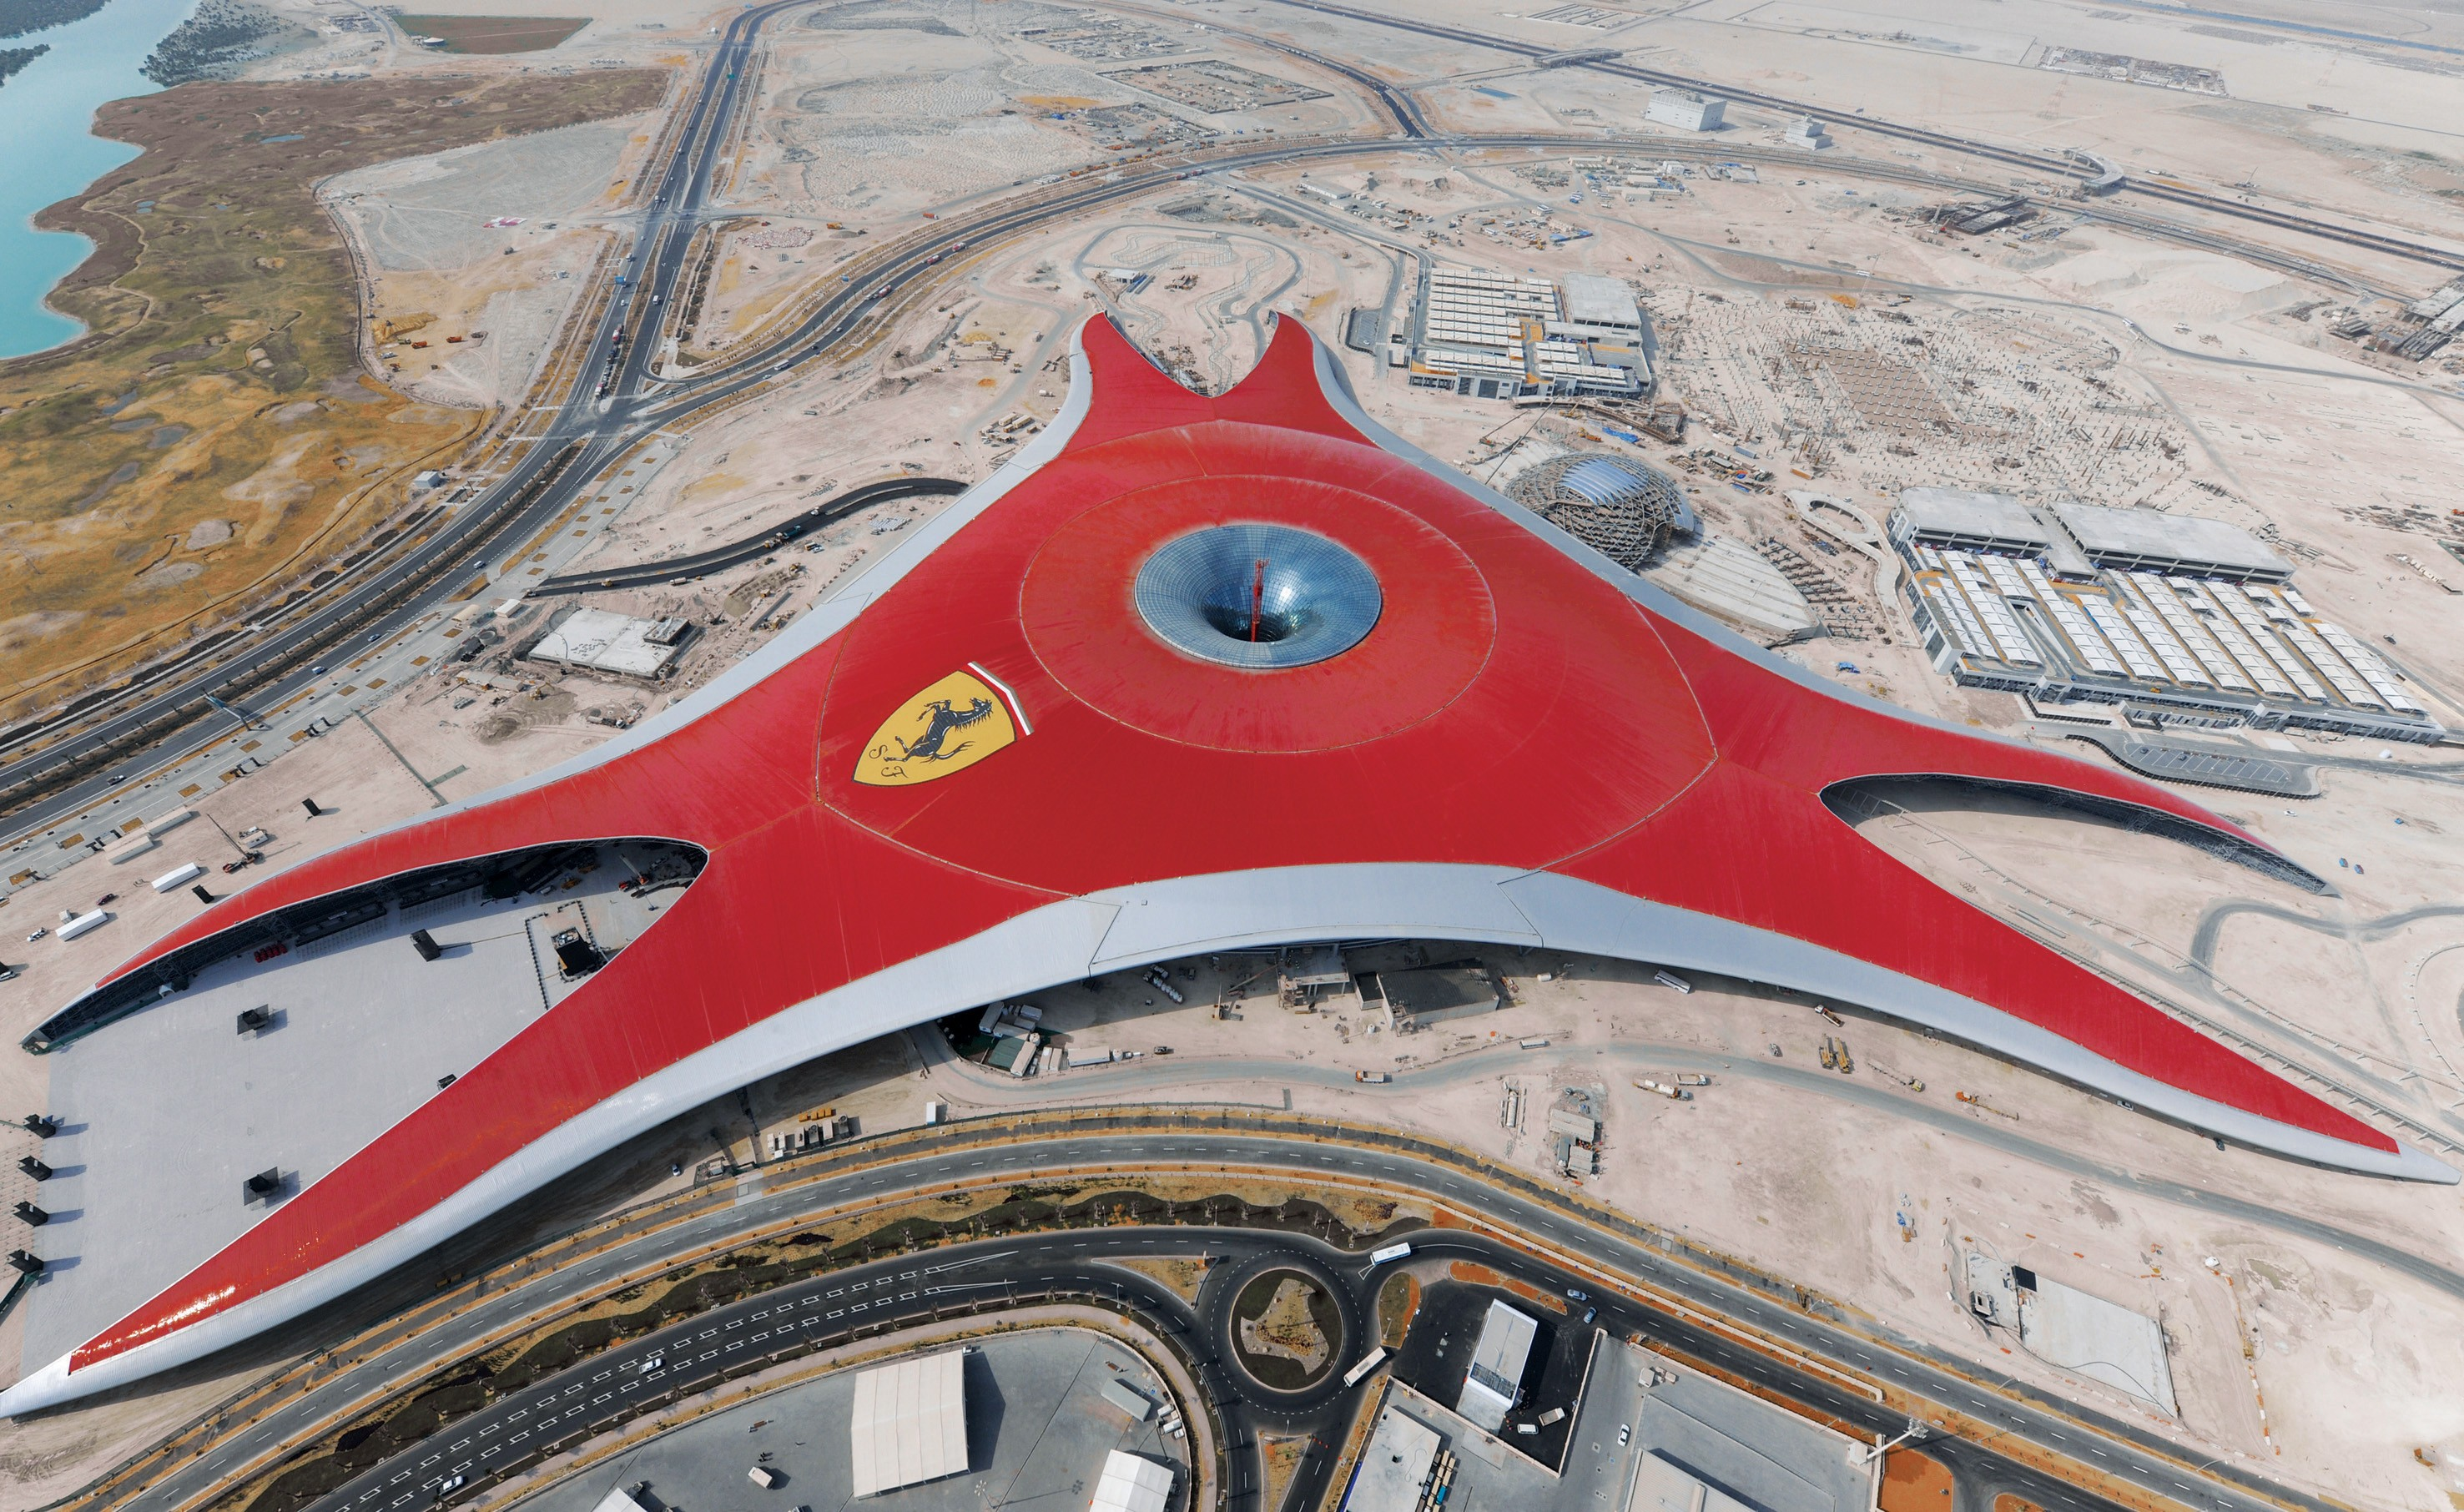 Book Abu Dhabi City Tour With Ferrari World Itinerary